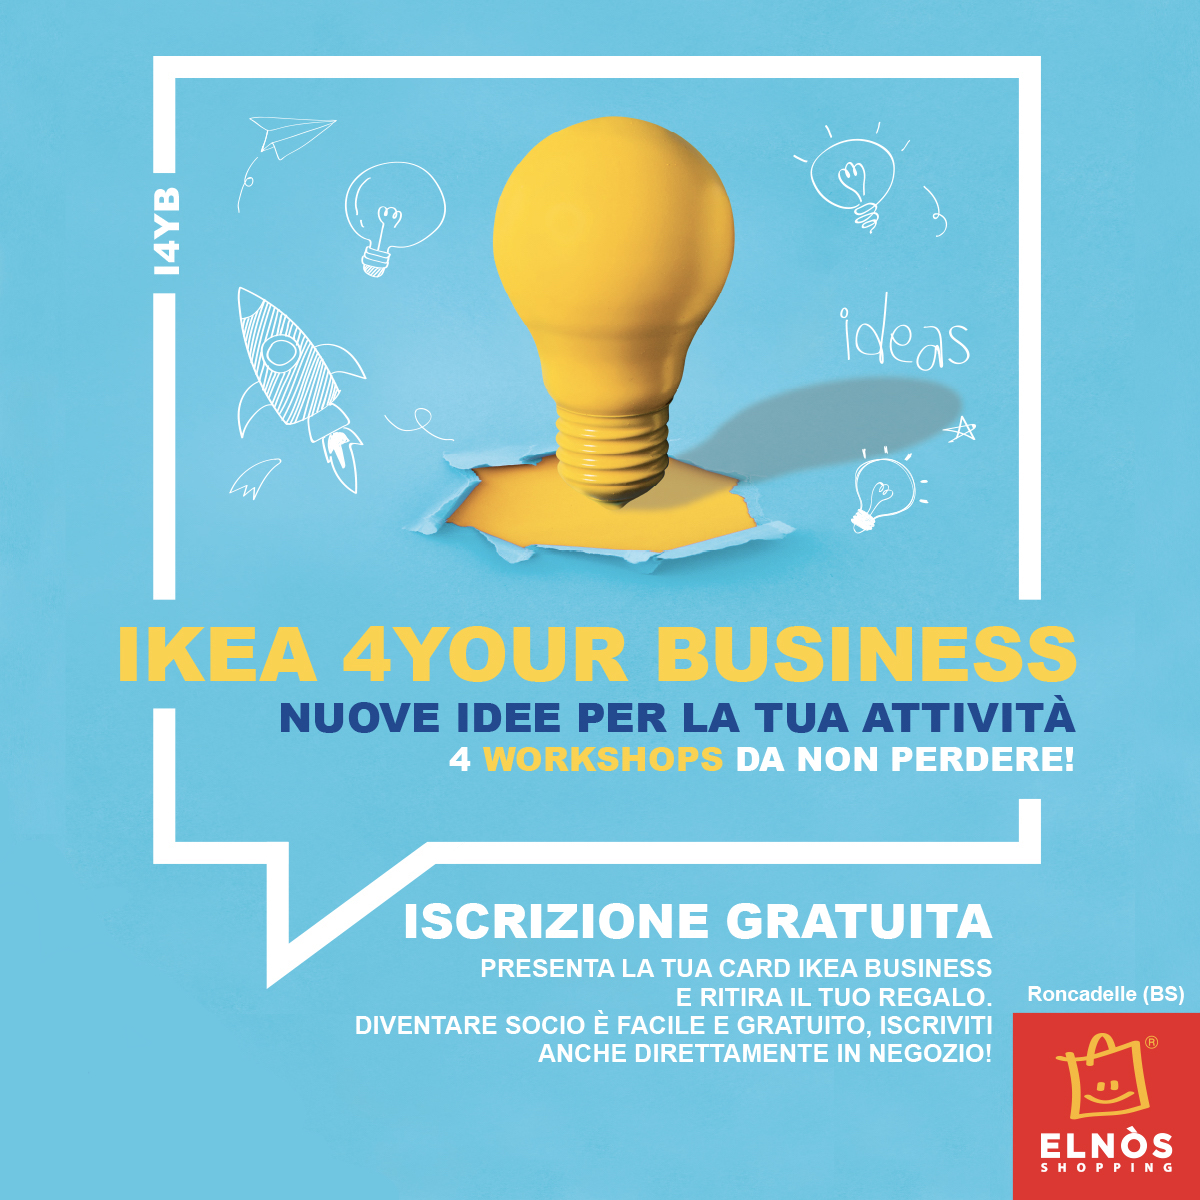 IKEA 4YOUR BUSINESS